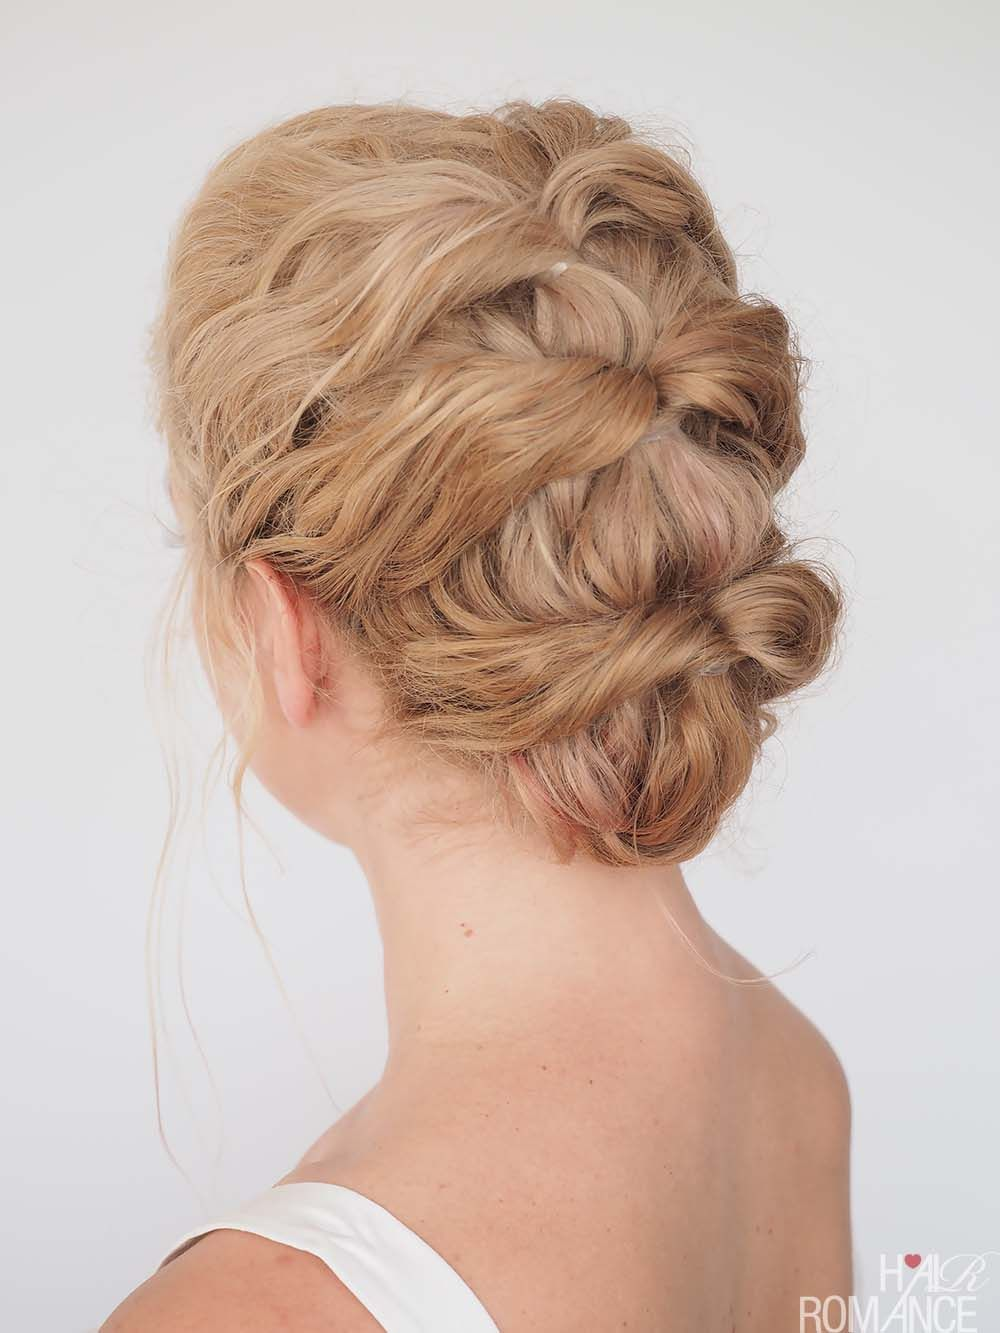 Quick and easy twist hairstyle tutorial u get great hair fast